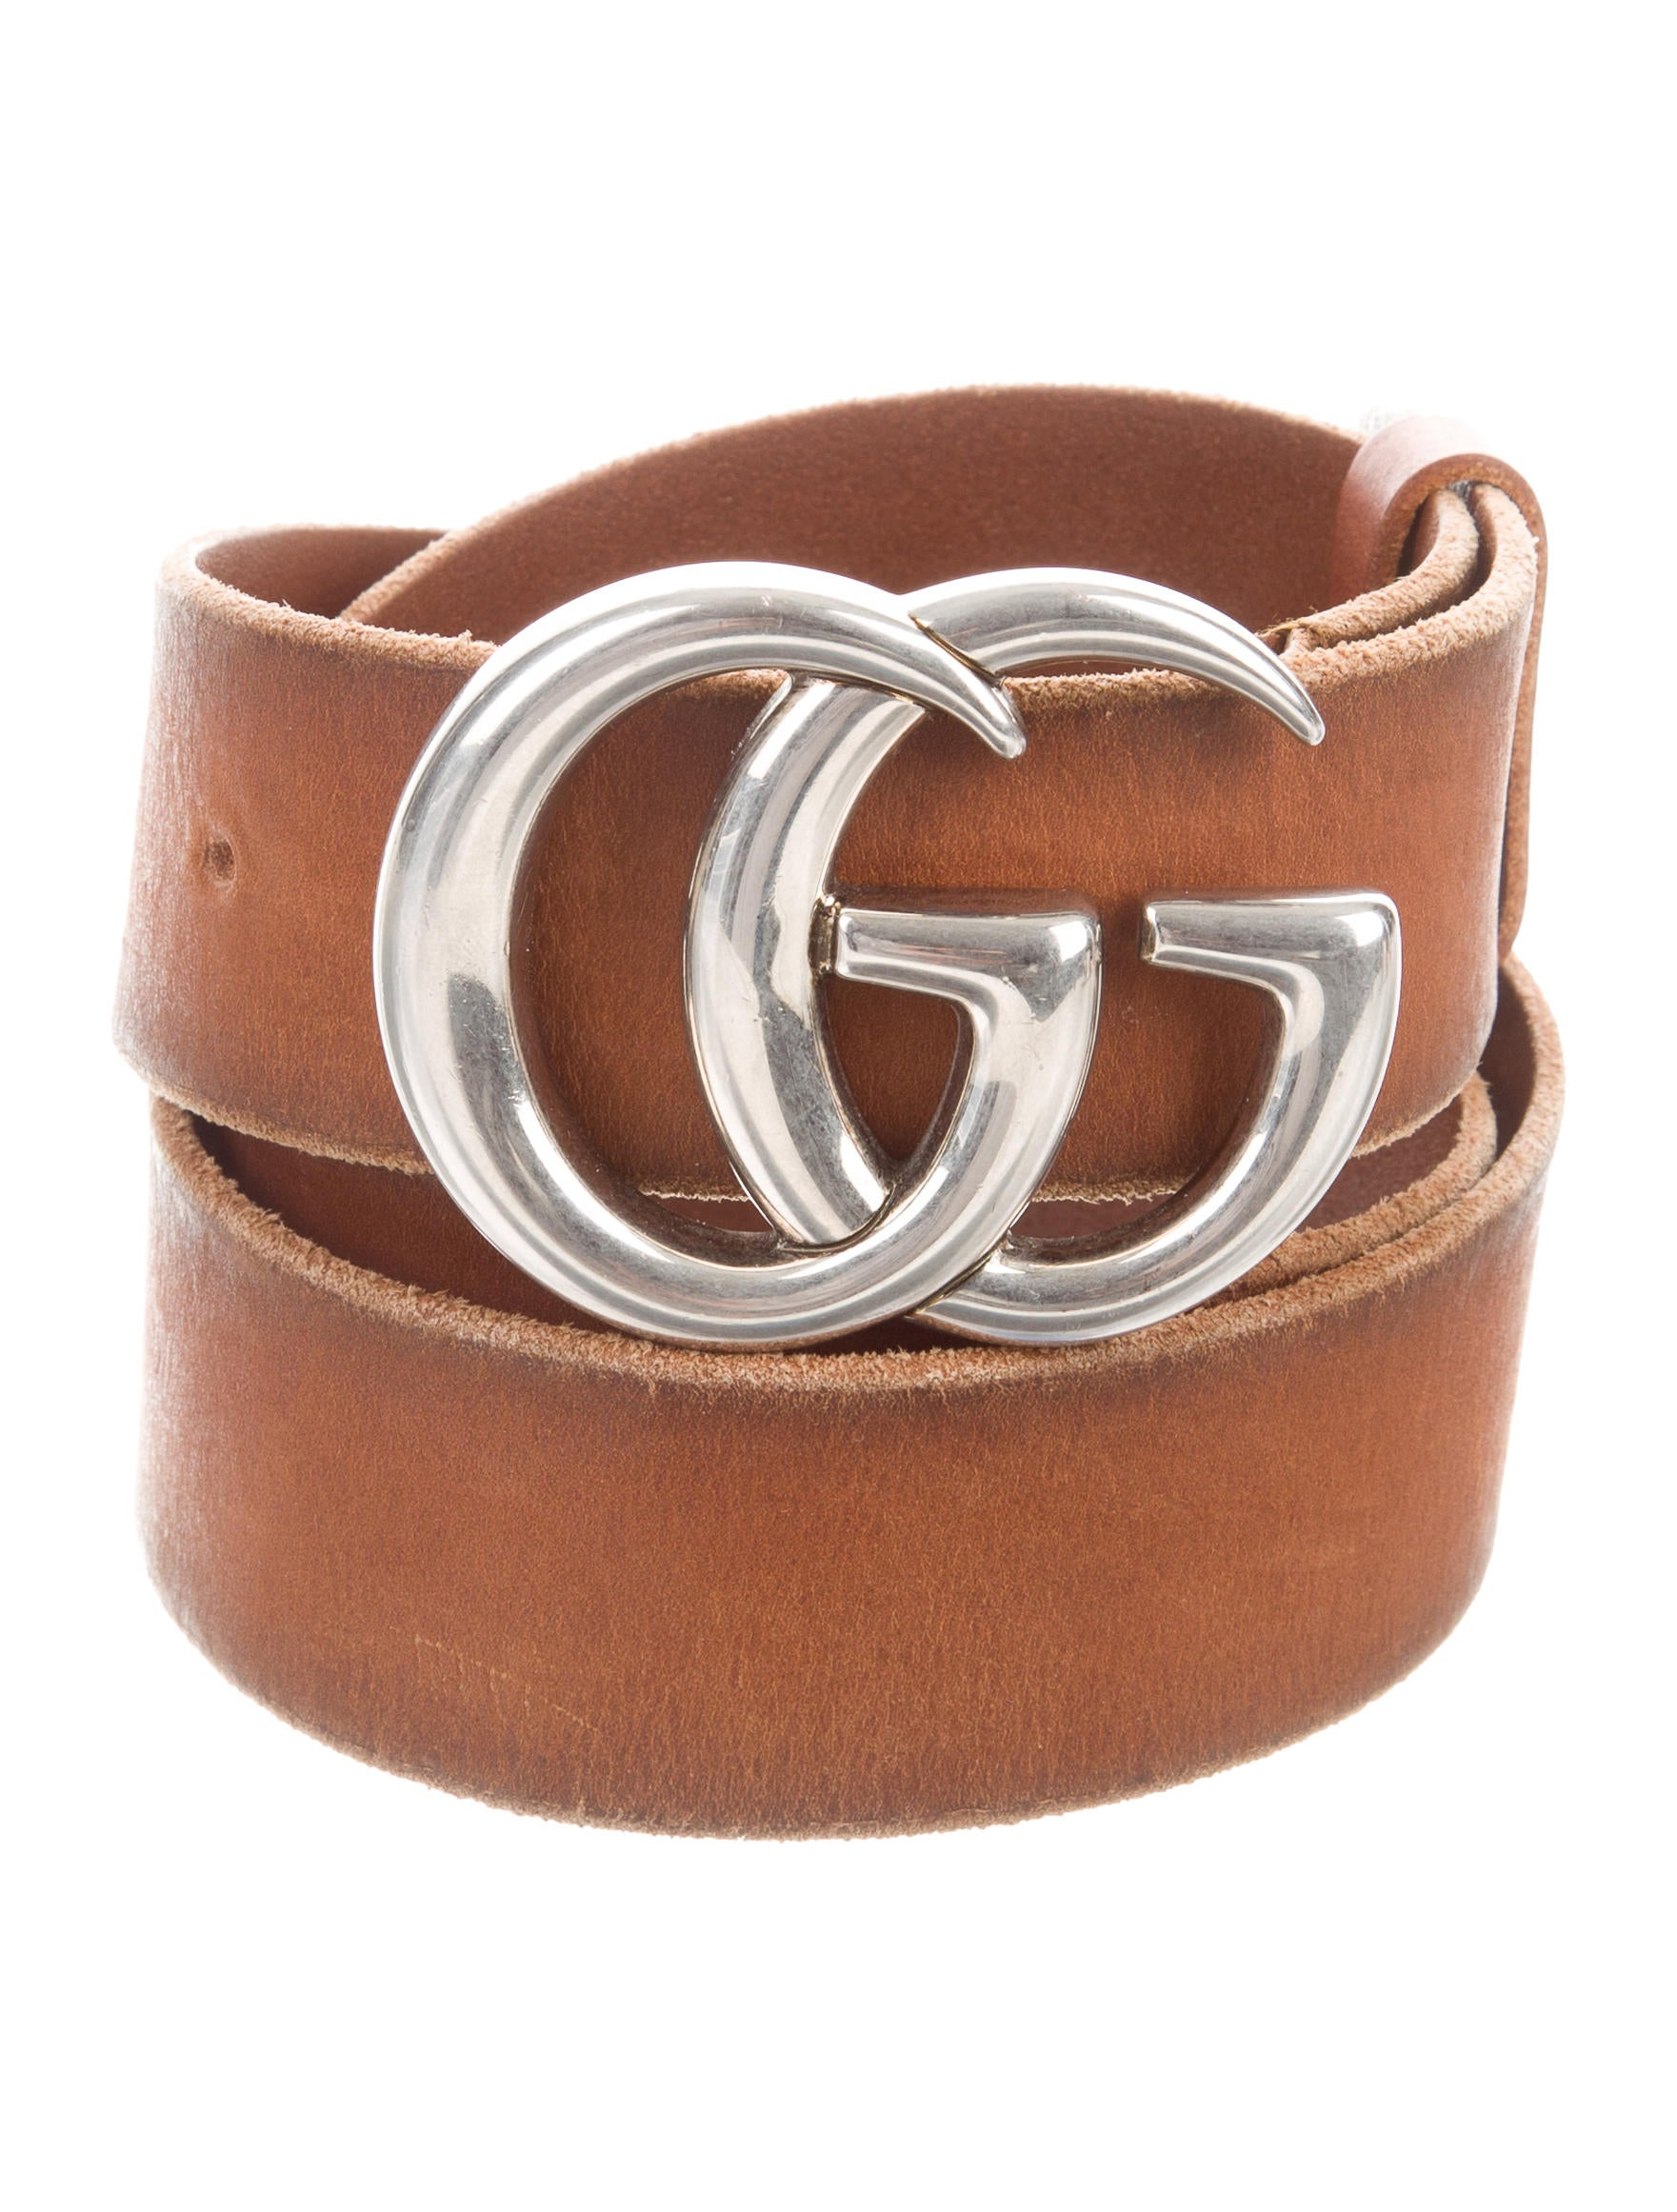 63ee65b1d Gucci Marmont Distressed Leather Belt - Accessories - GUC281995 ...